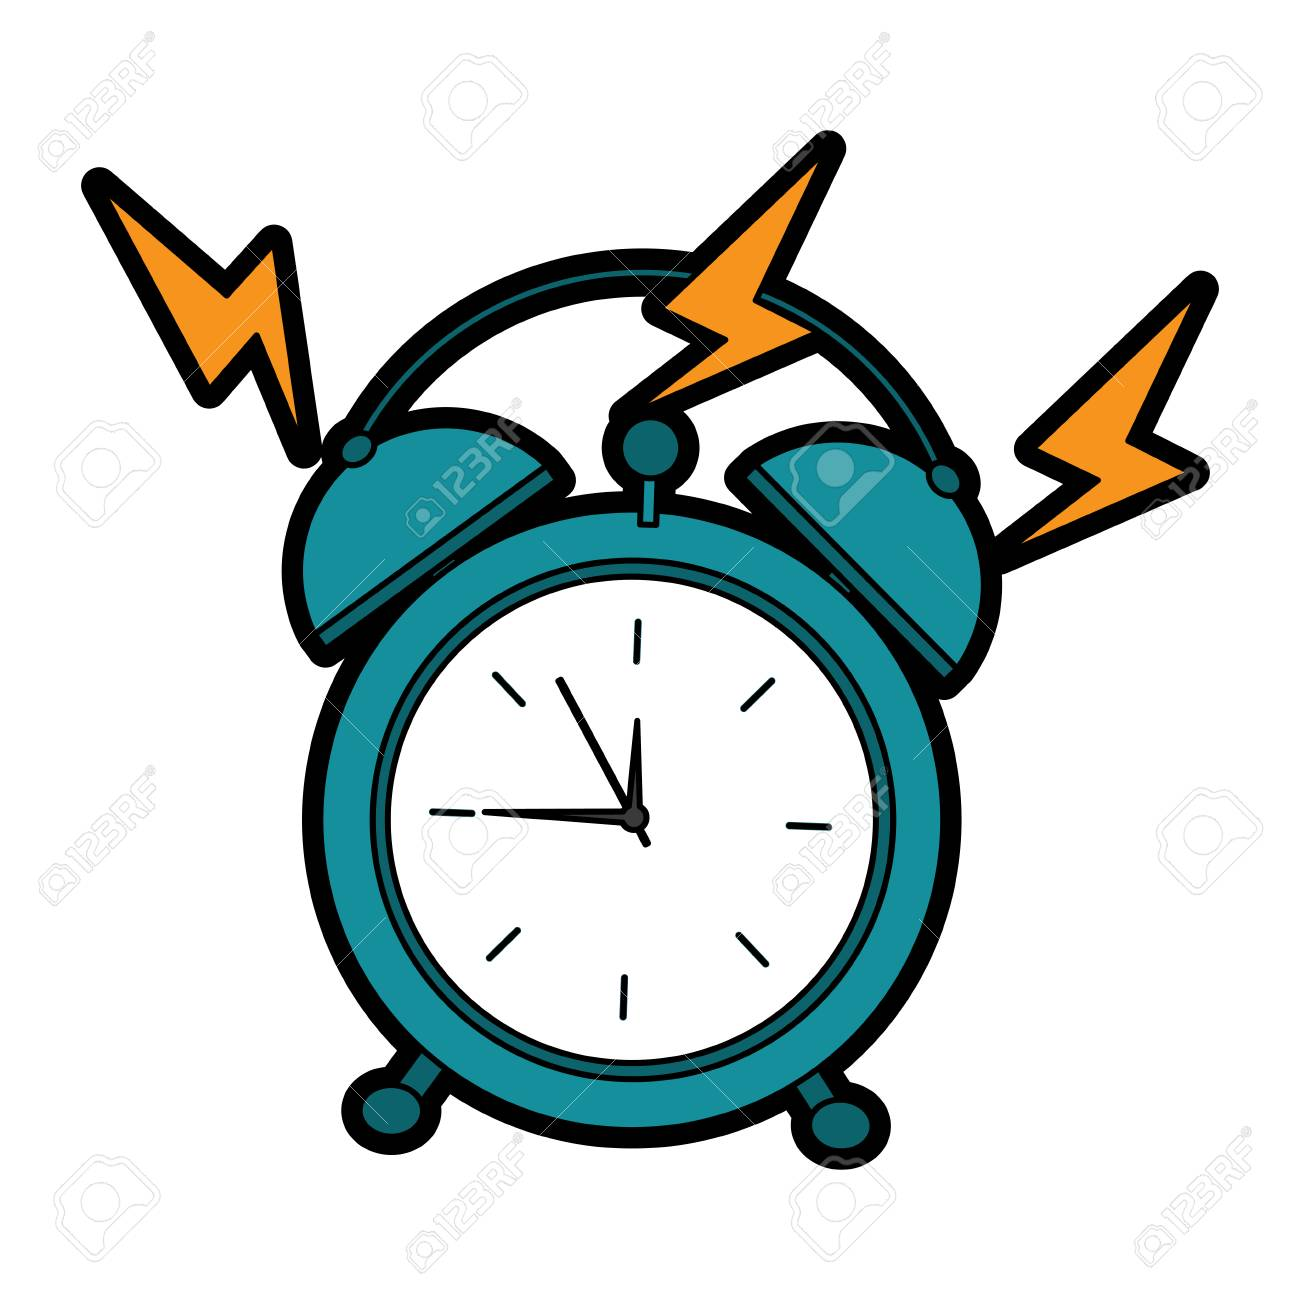 Alarm Clock Ringing Icon Image Vector Illustration Design Royalty Free Cliparts Vectors And Stock Illustration Image 96065952